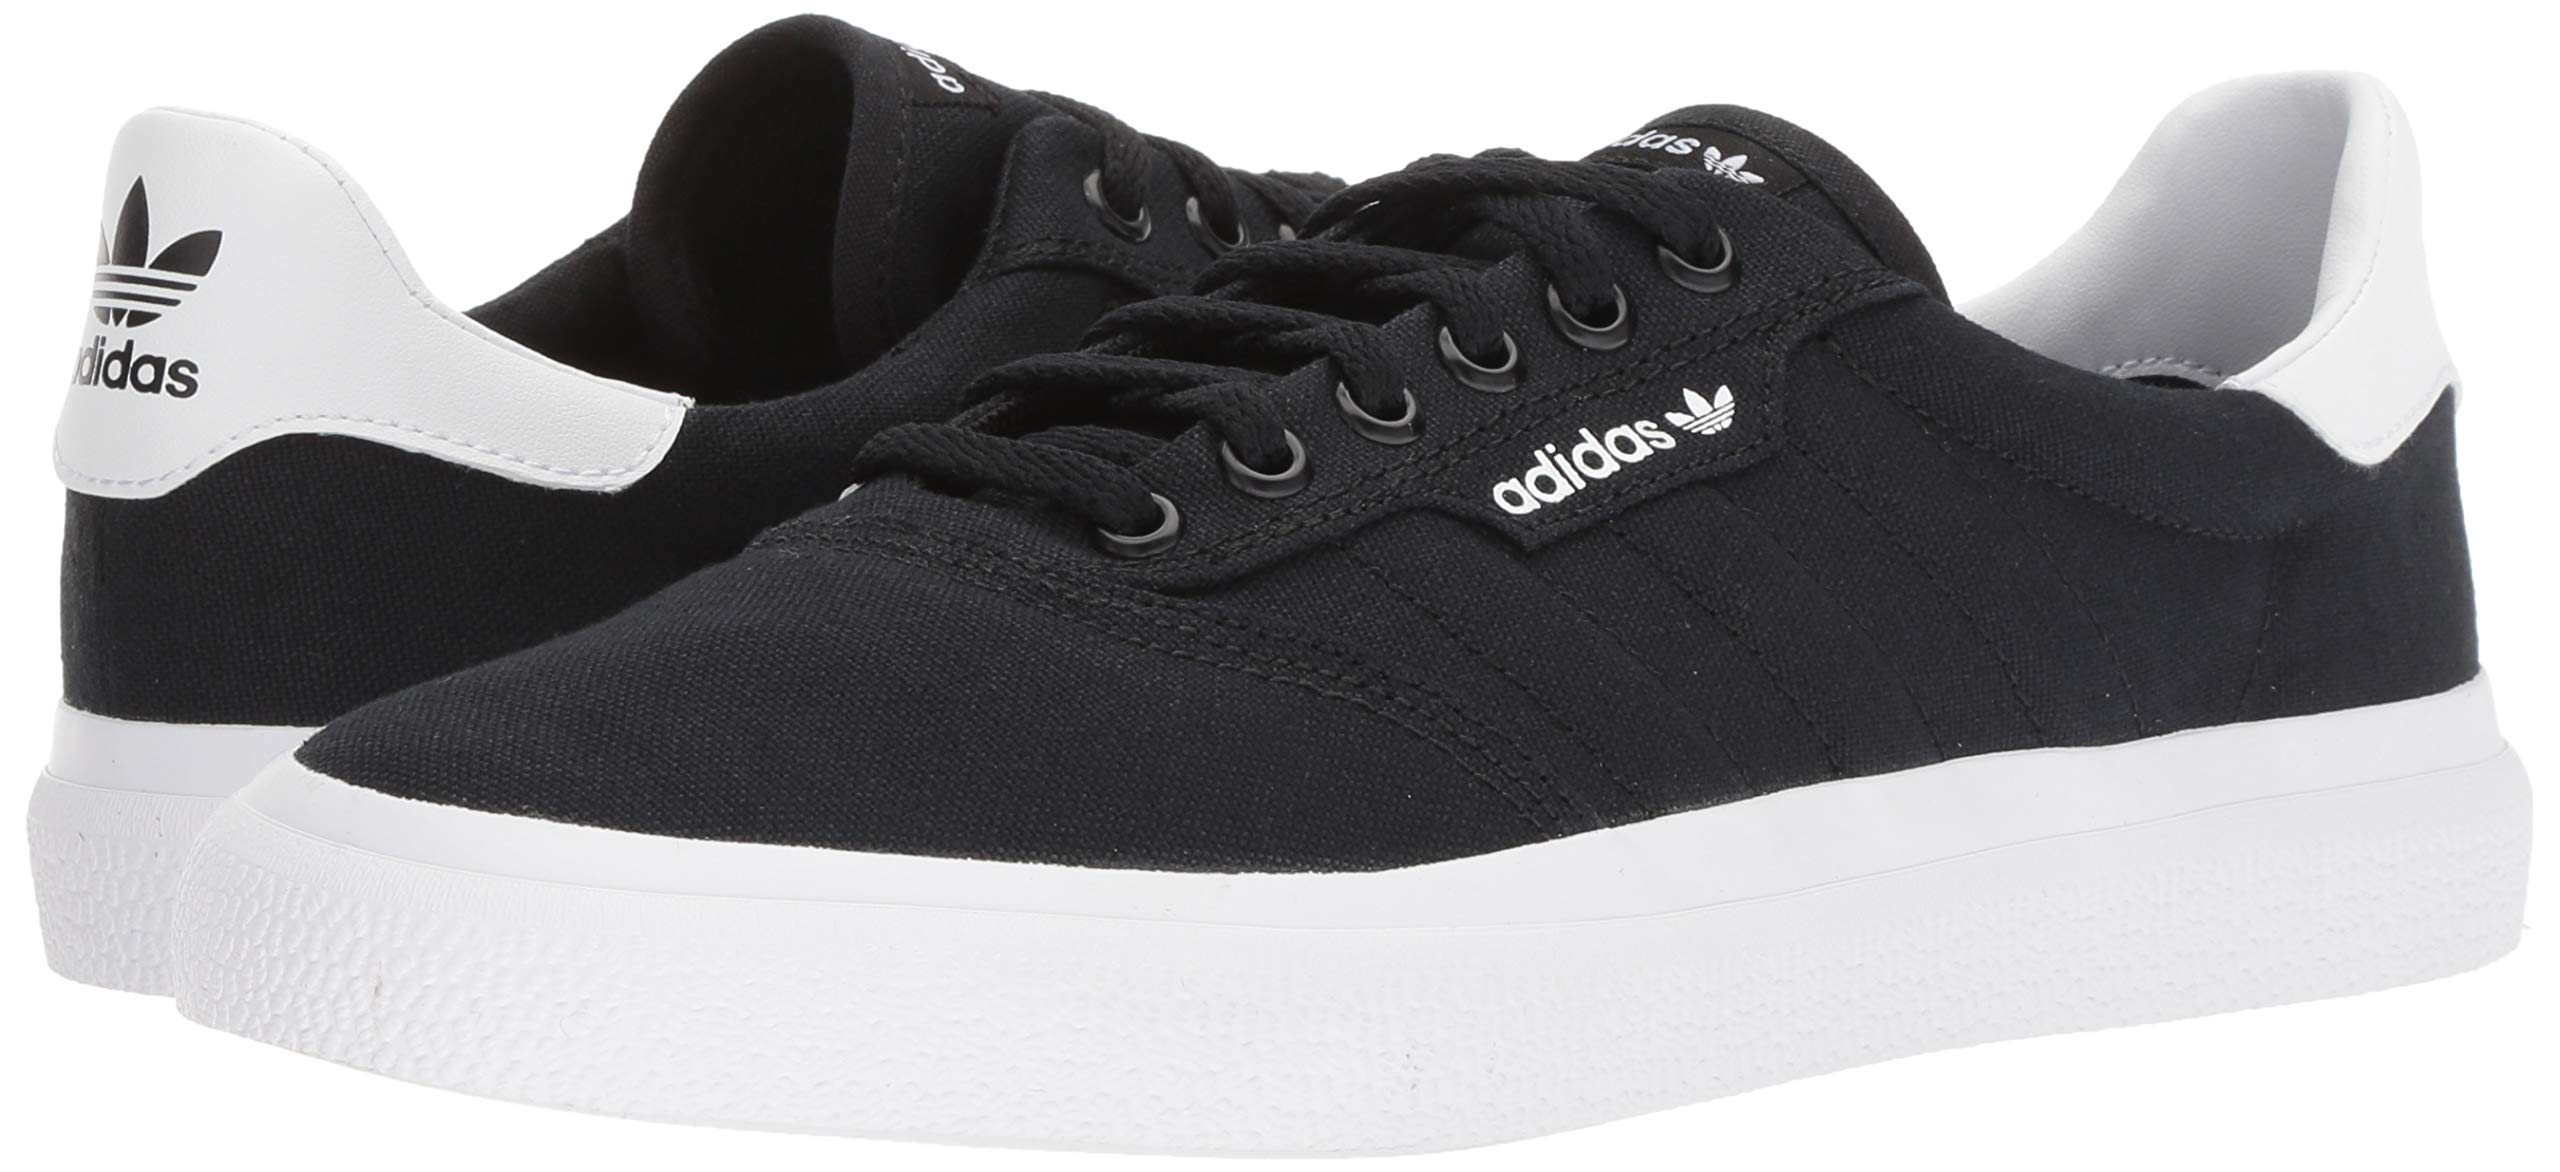 adidas Originals unisex-adult Black/White, 3 MC Skate Shoe 6.5 M US by adidas Originals (Image #6)